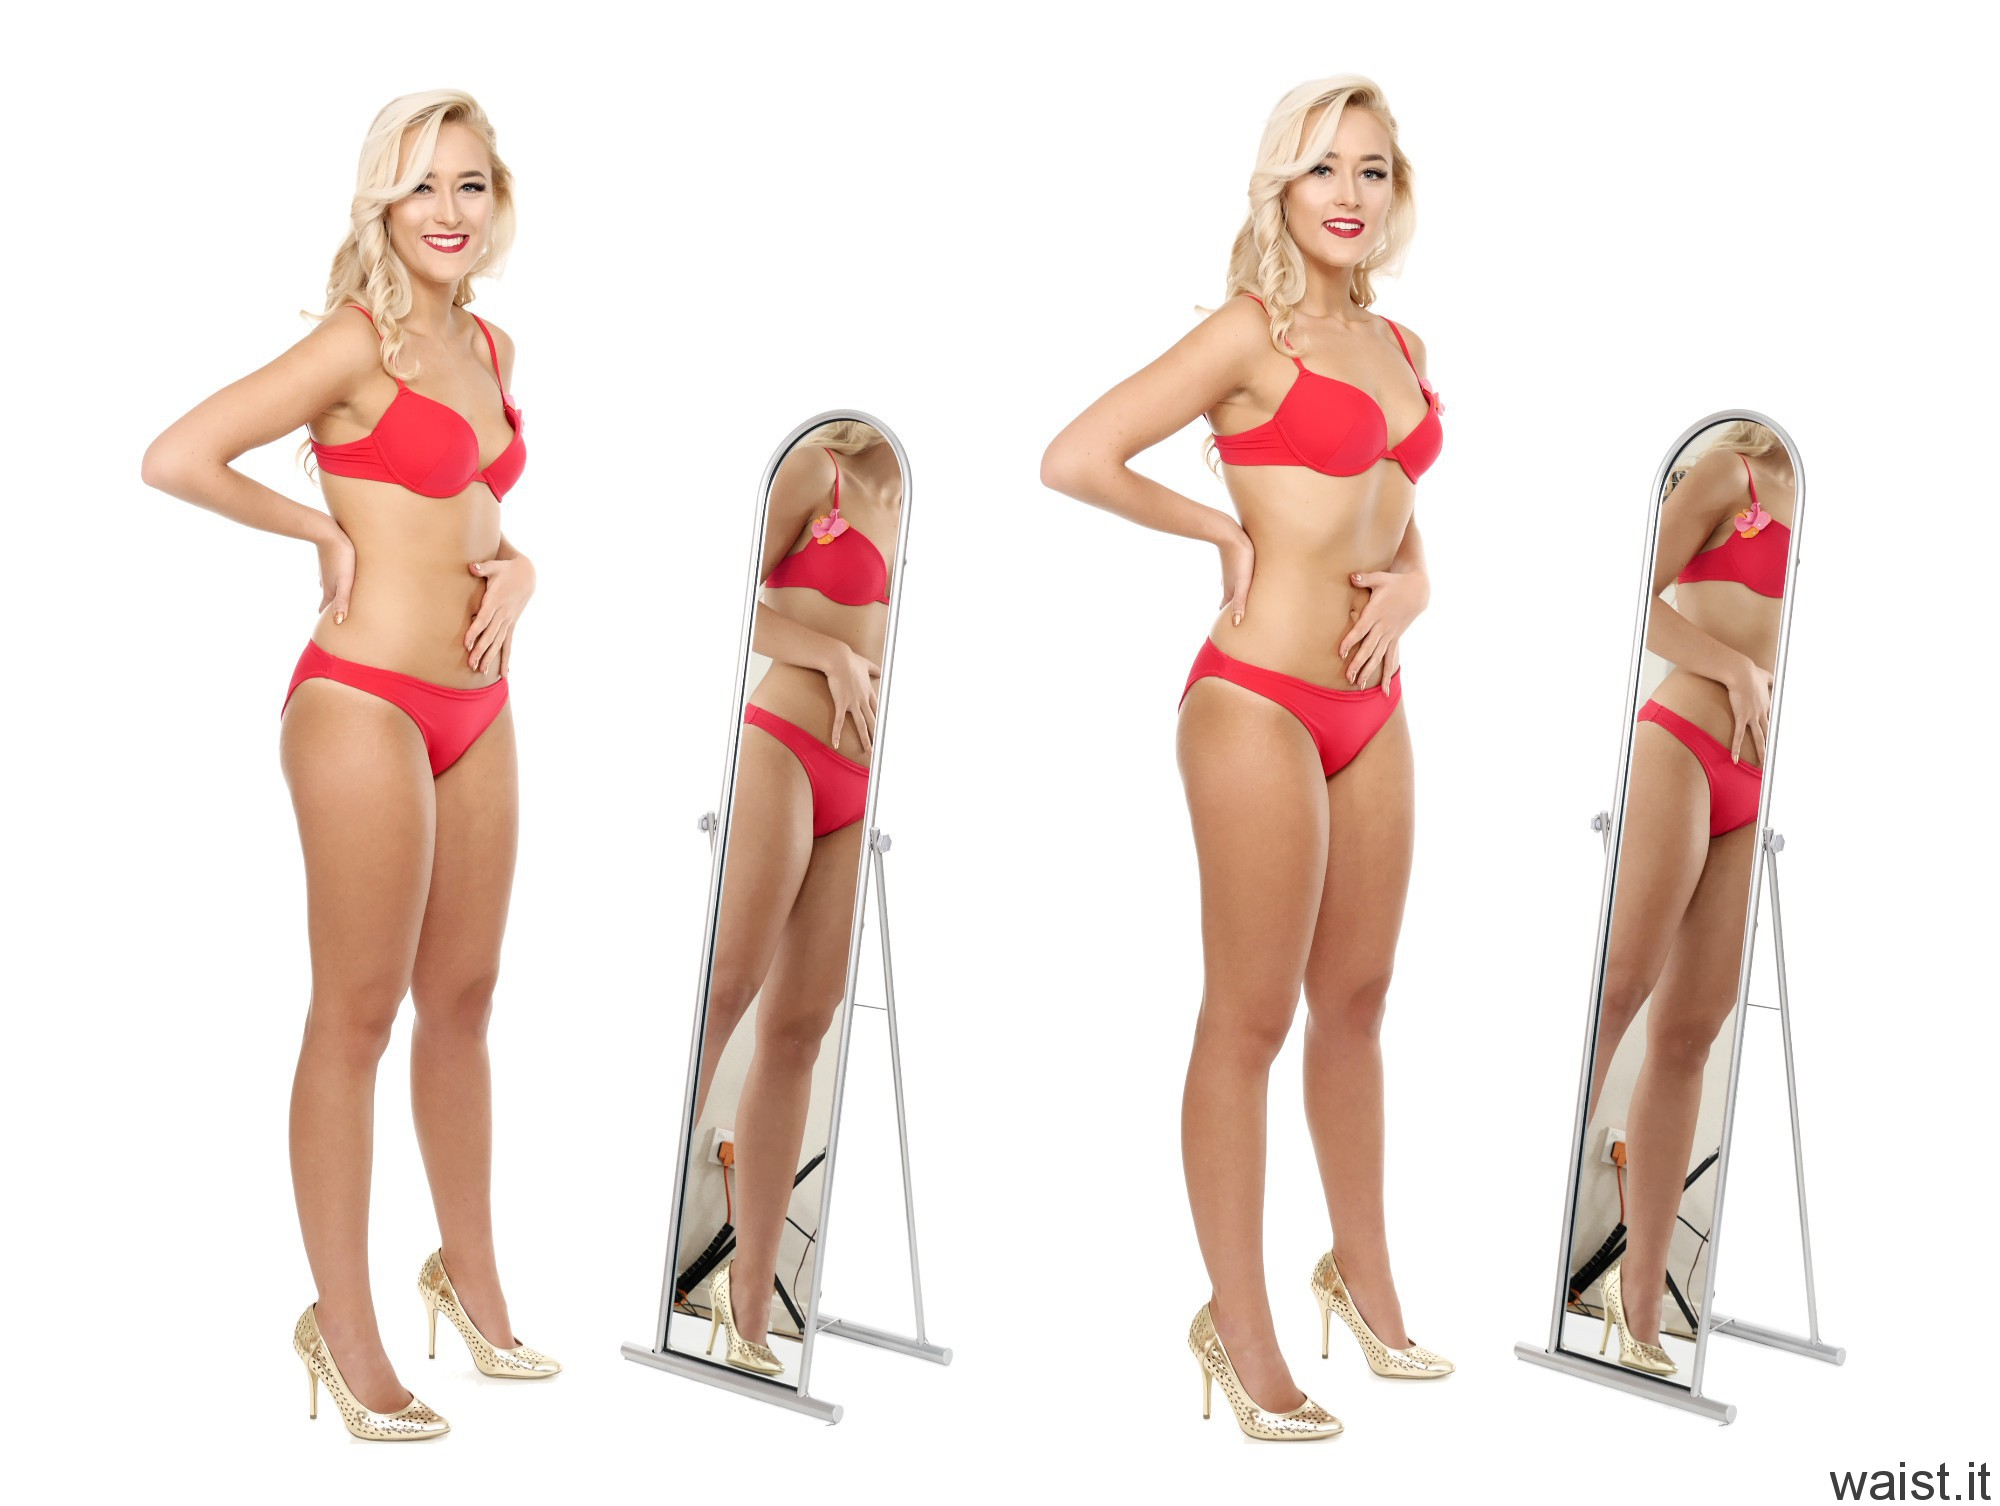 2016-11-06 Fleur fitness collage - in red bikini showing how to minimise waist and flatten tummy